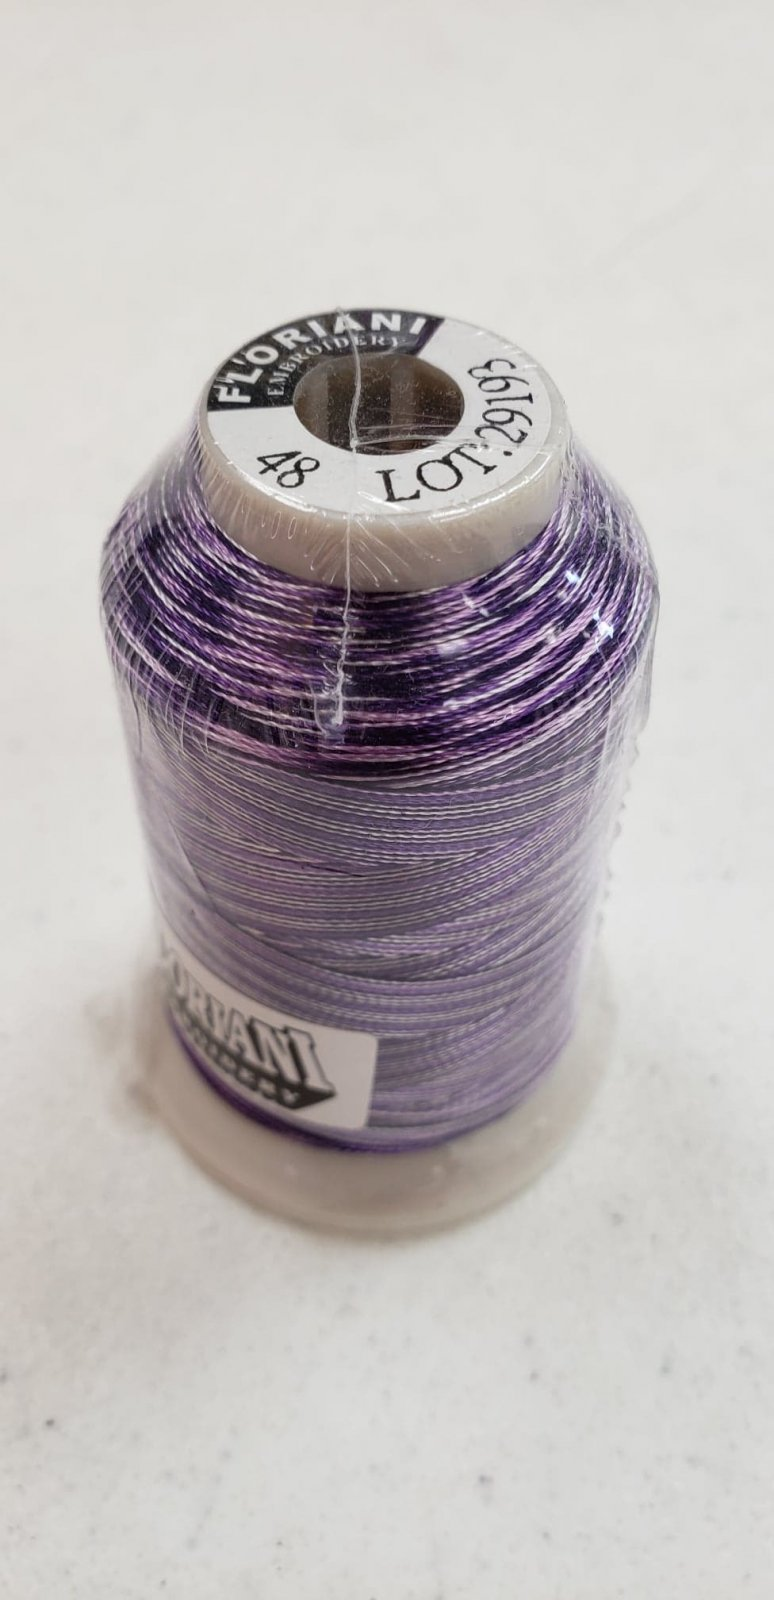 Floriani Premium Variegated Embroidery Thread FV48 Royal Purple Stripe